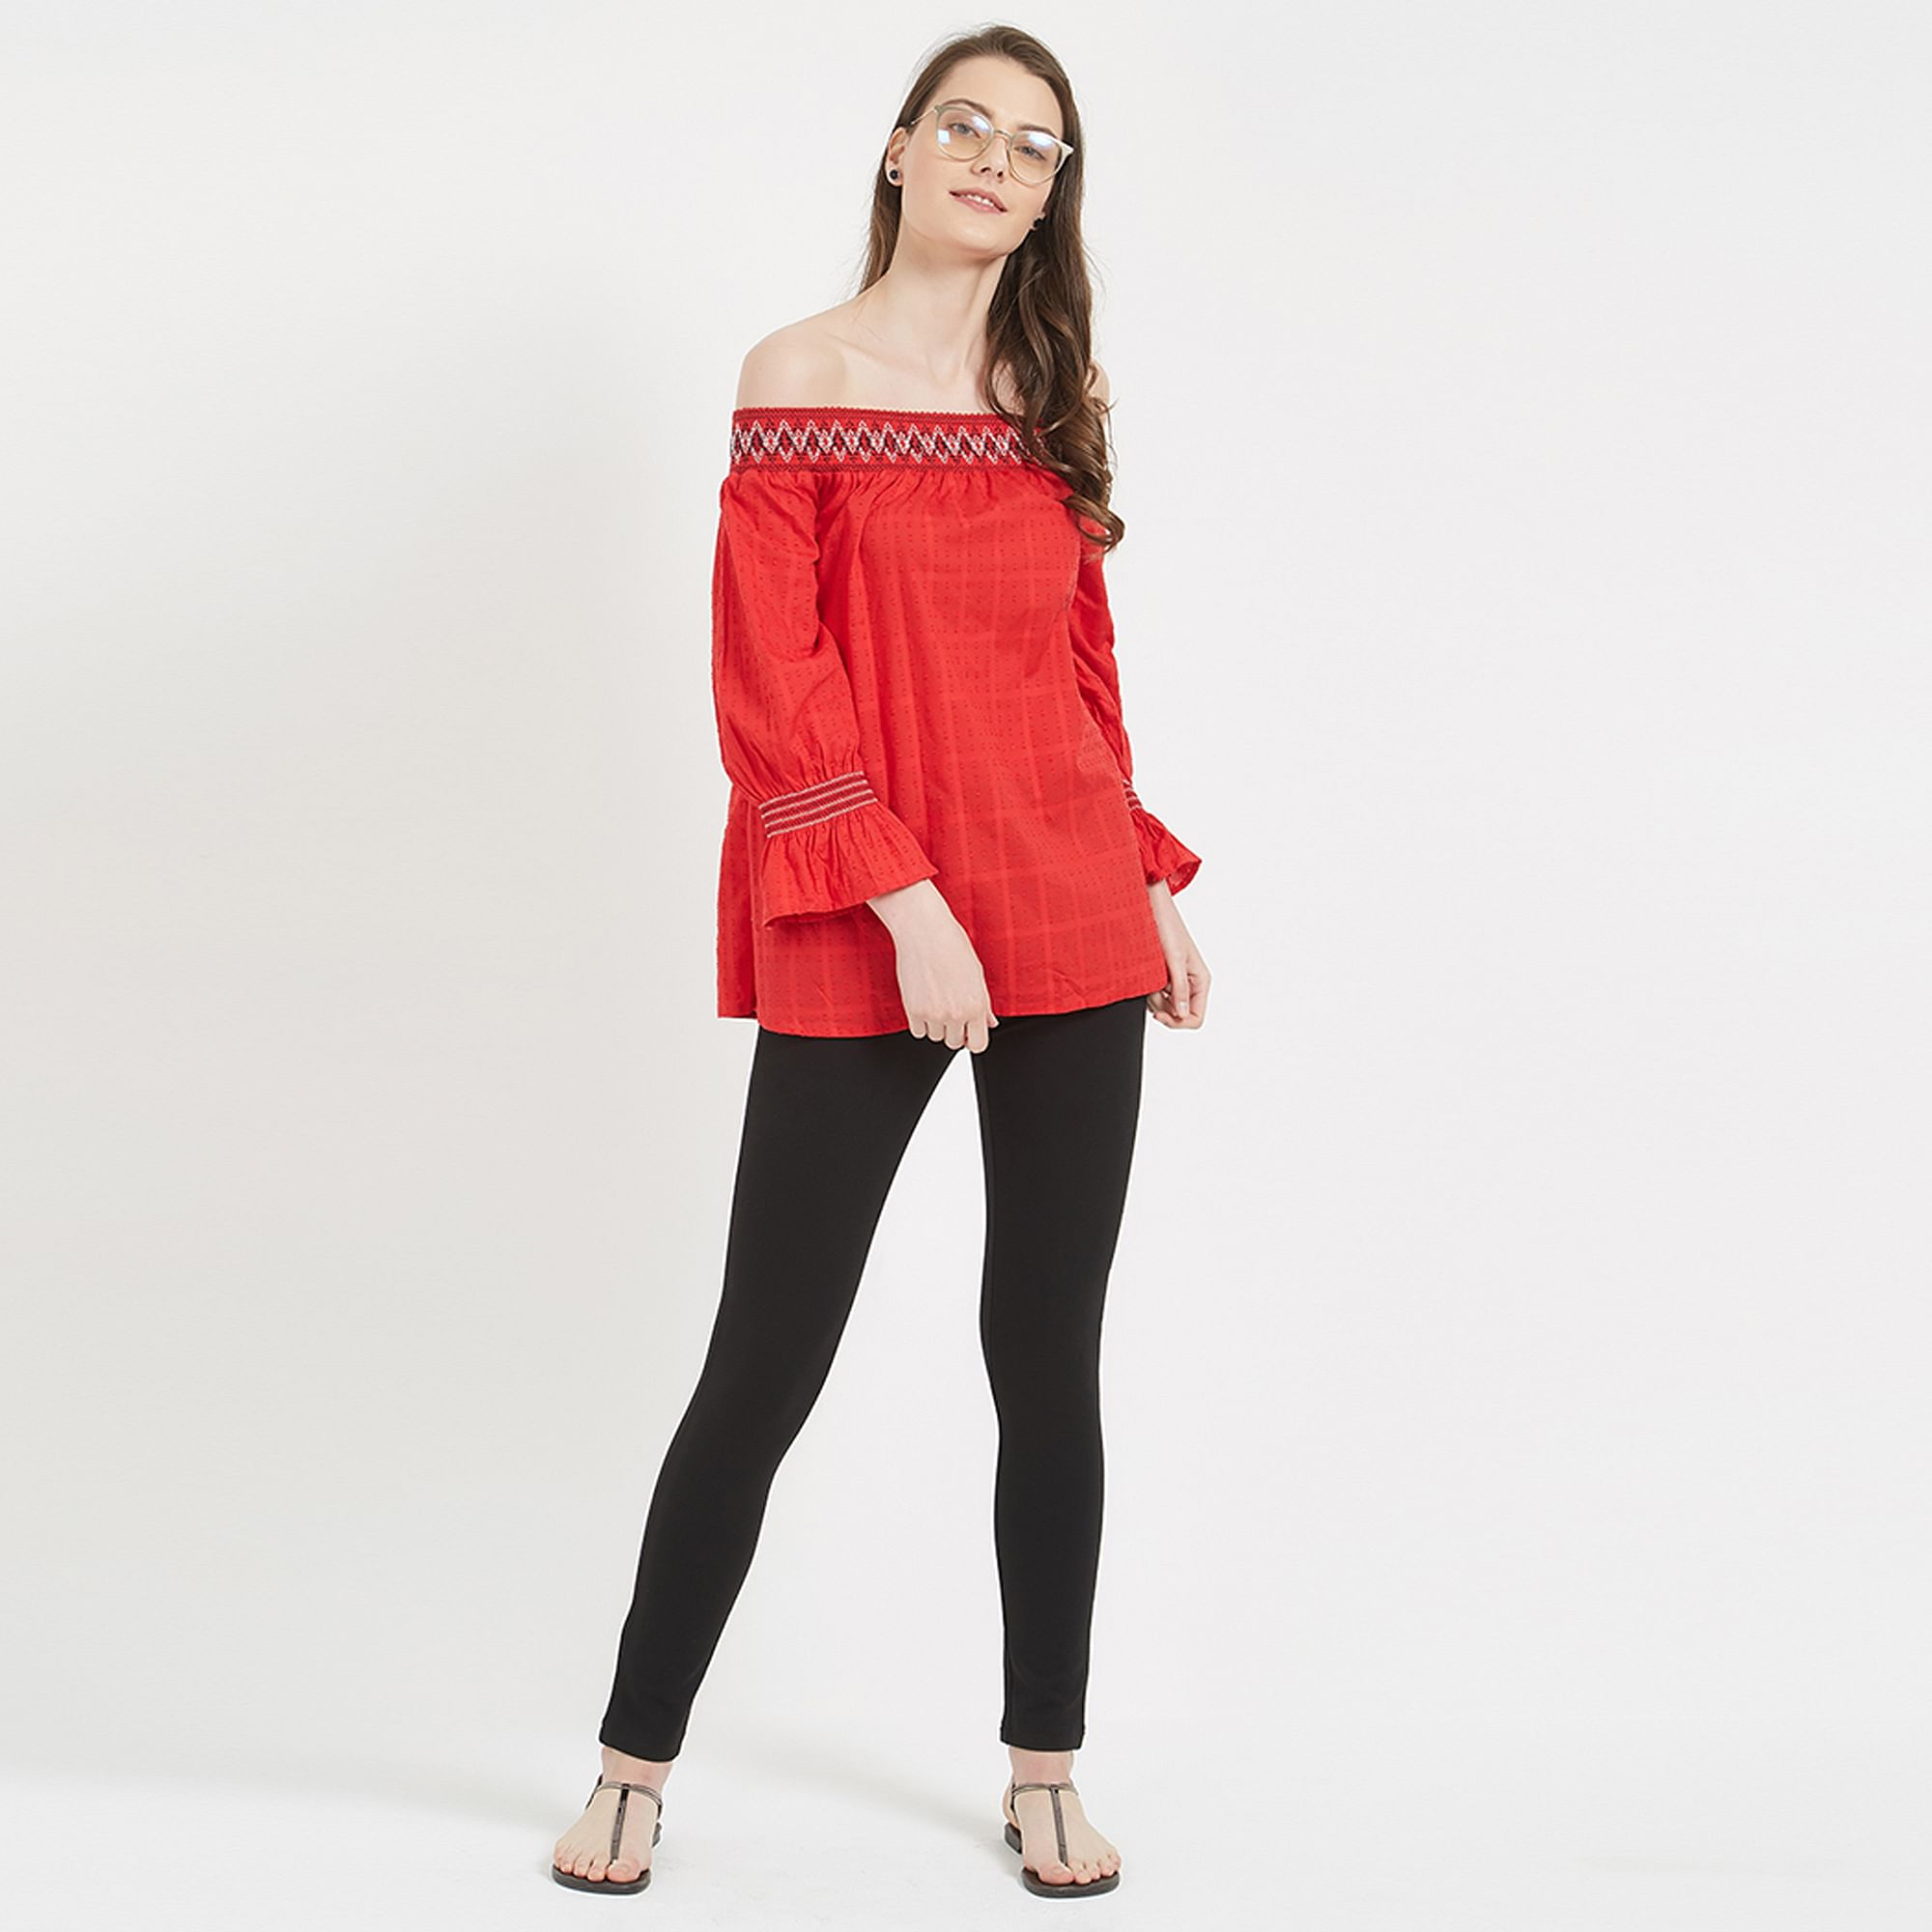 Ravishing Red Colored Party Wear Western Cotton Top